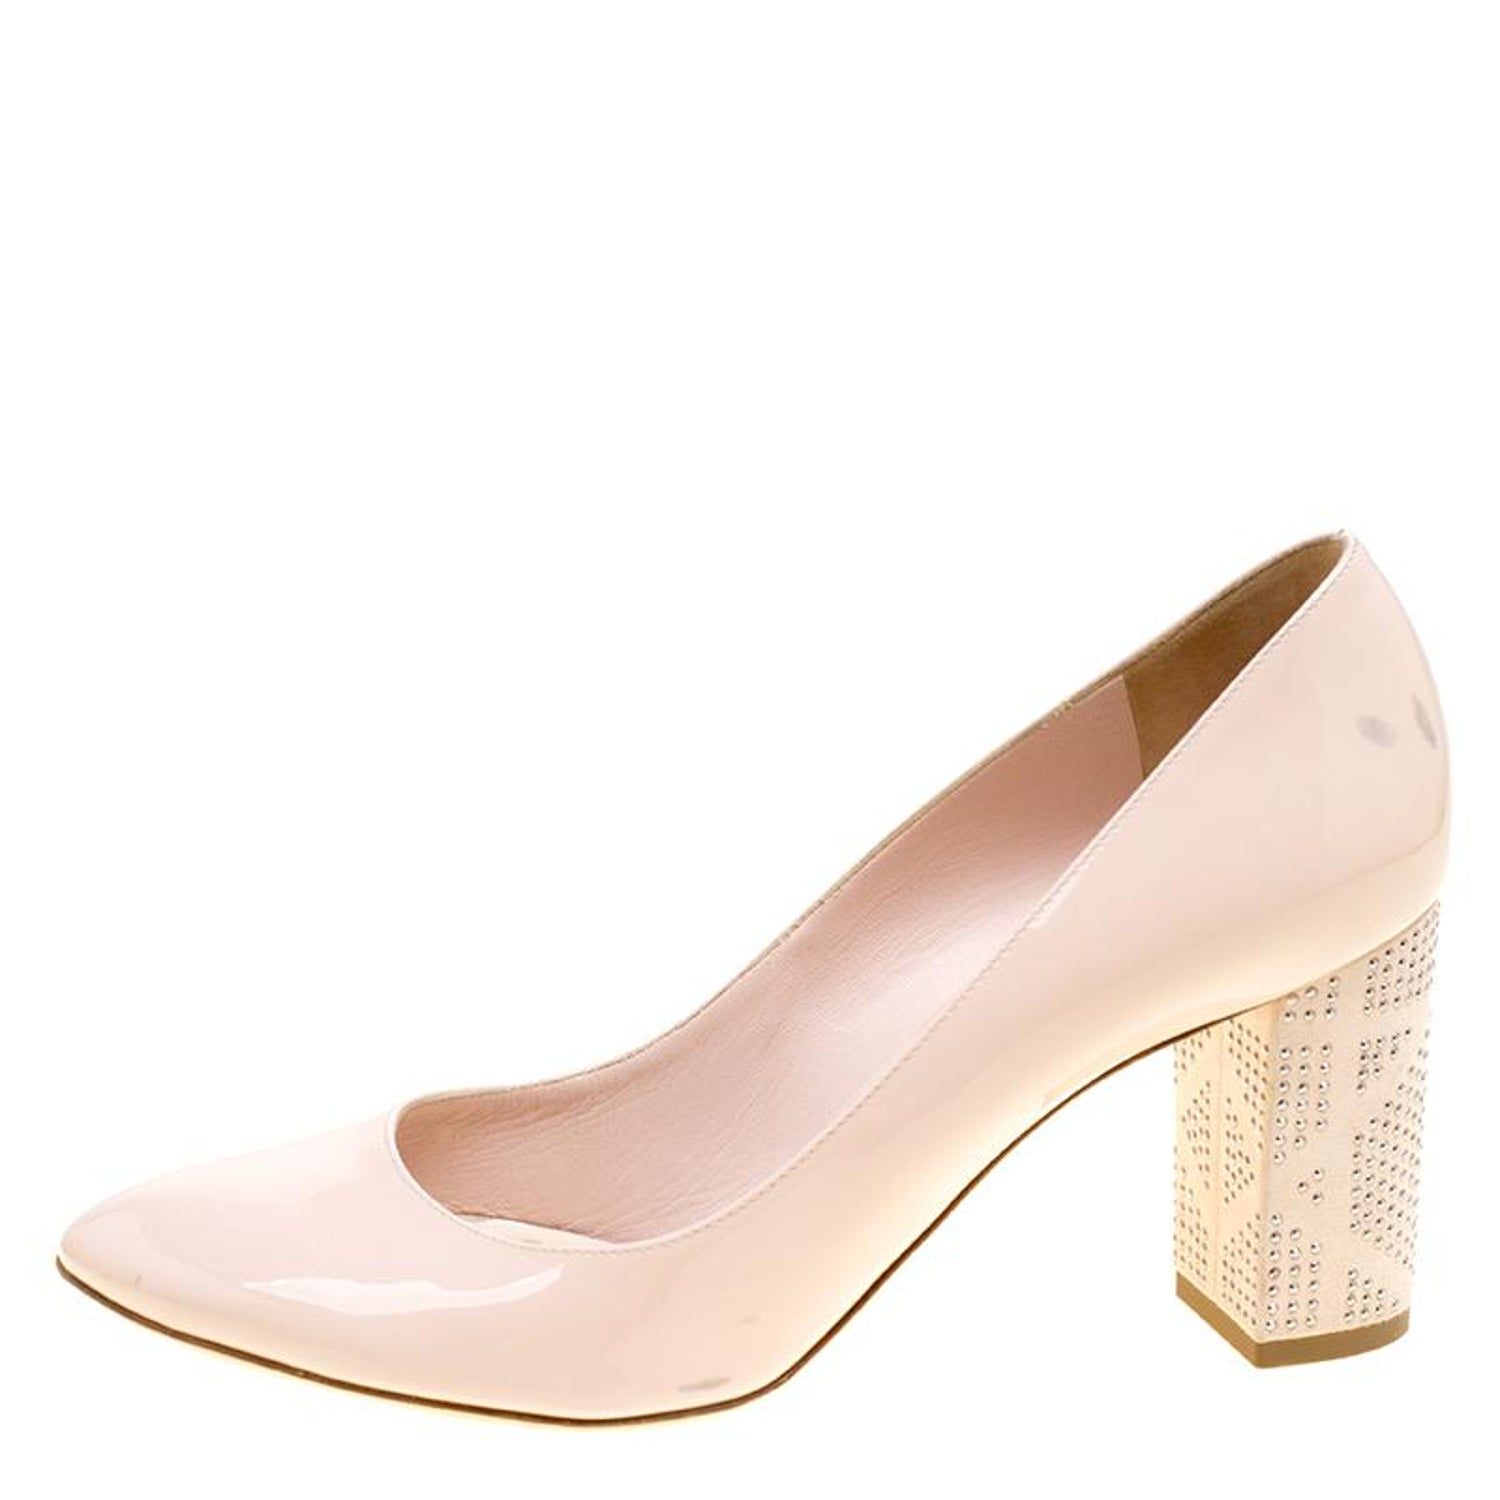 614990393db Dior Blush Pink Patent Leather and Suede Block Heel Pumps Size 39.5 For Sale  at 1stdibs